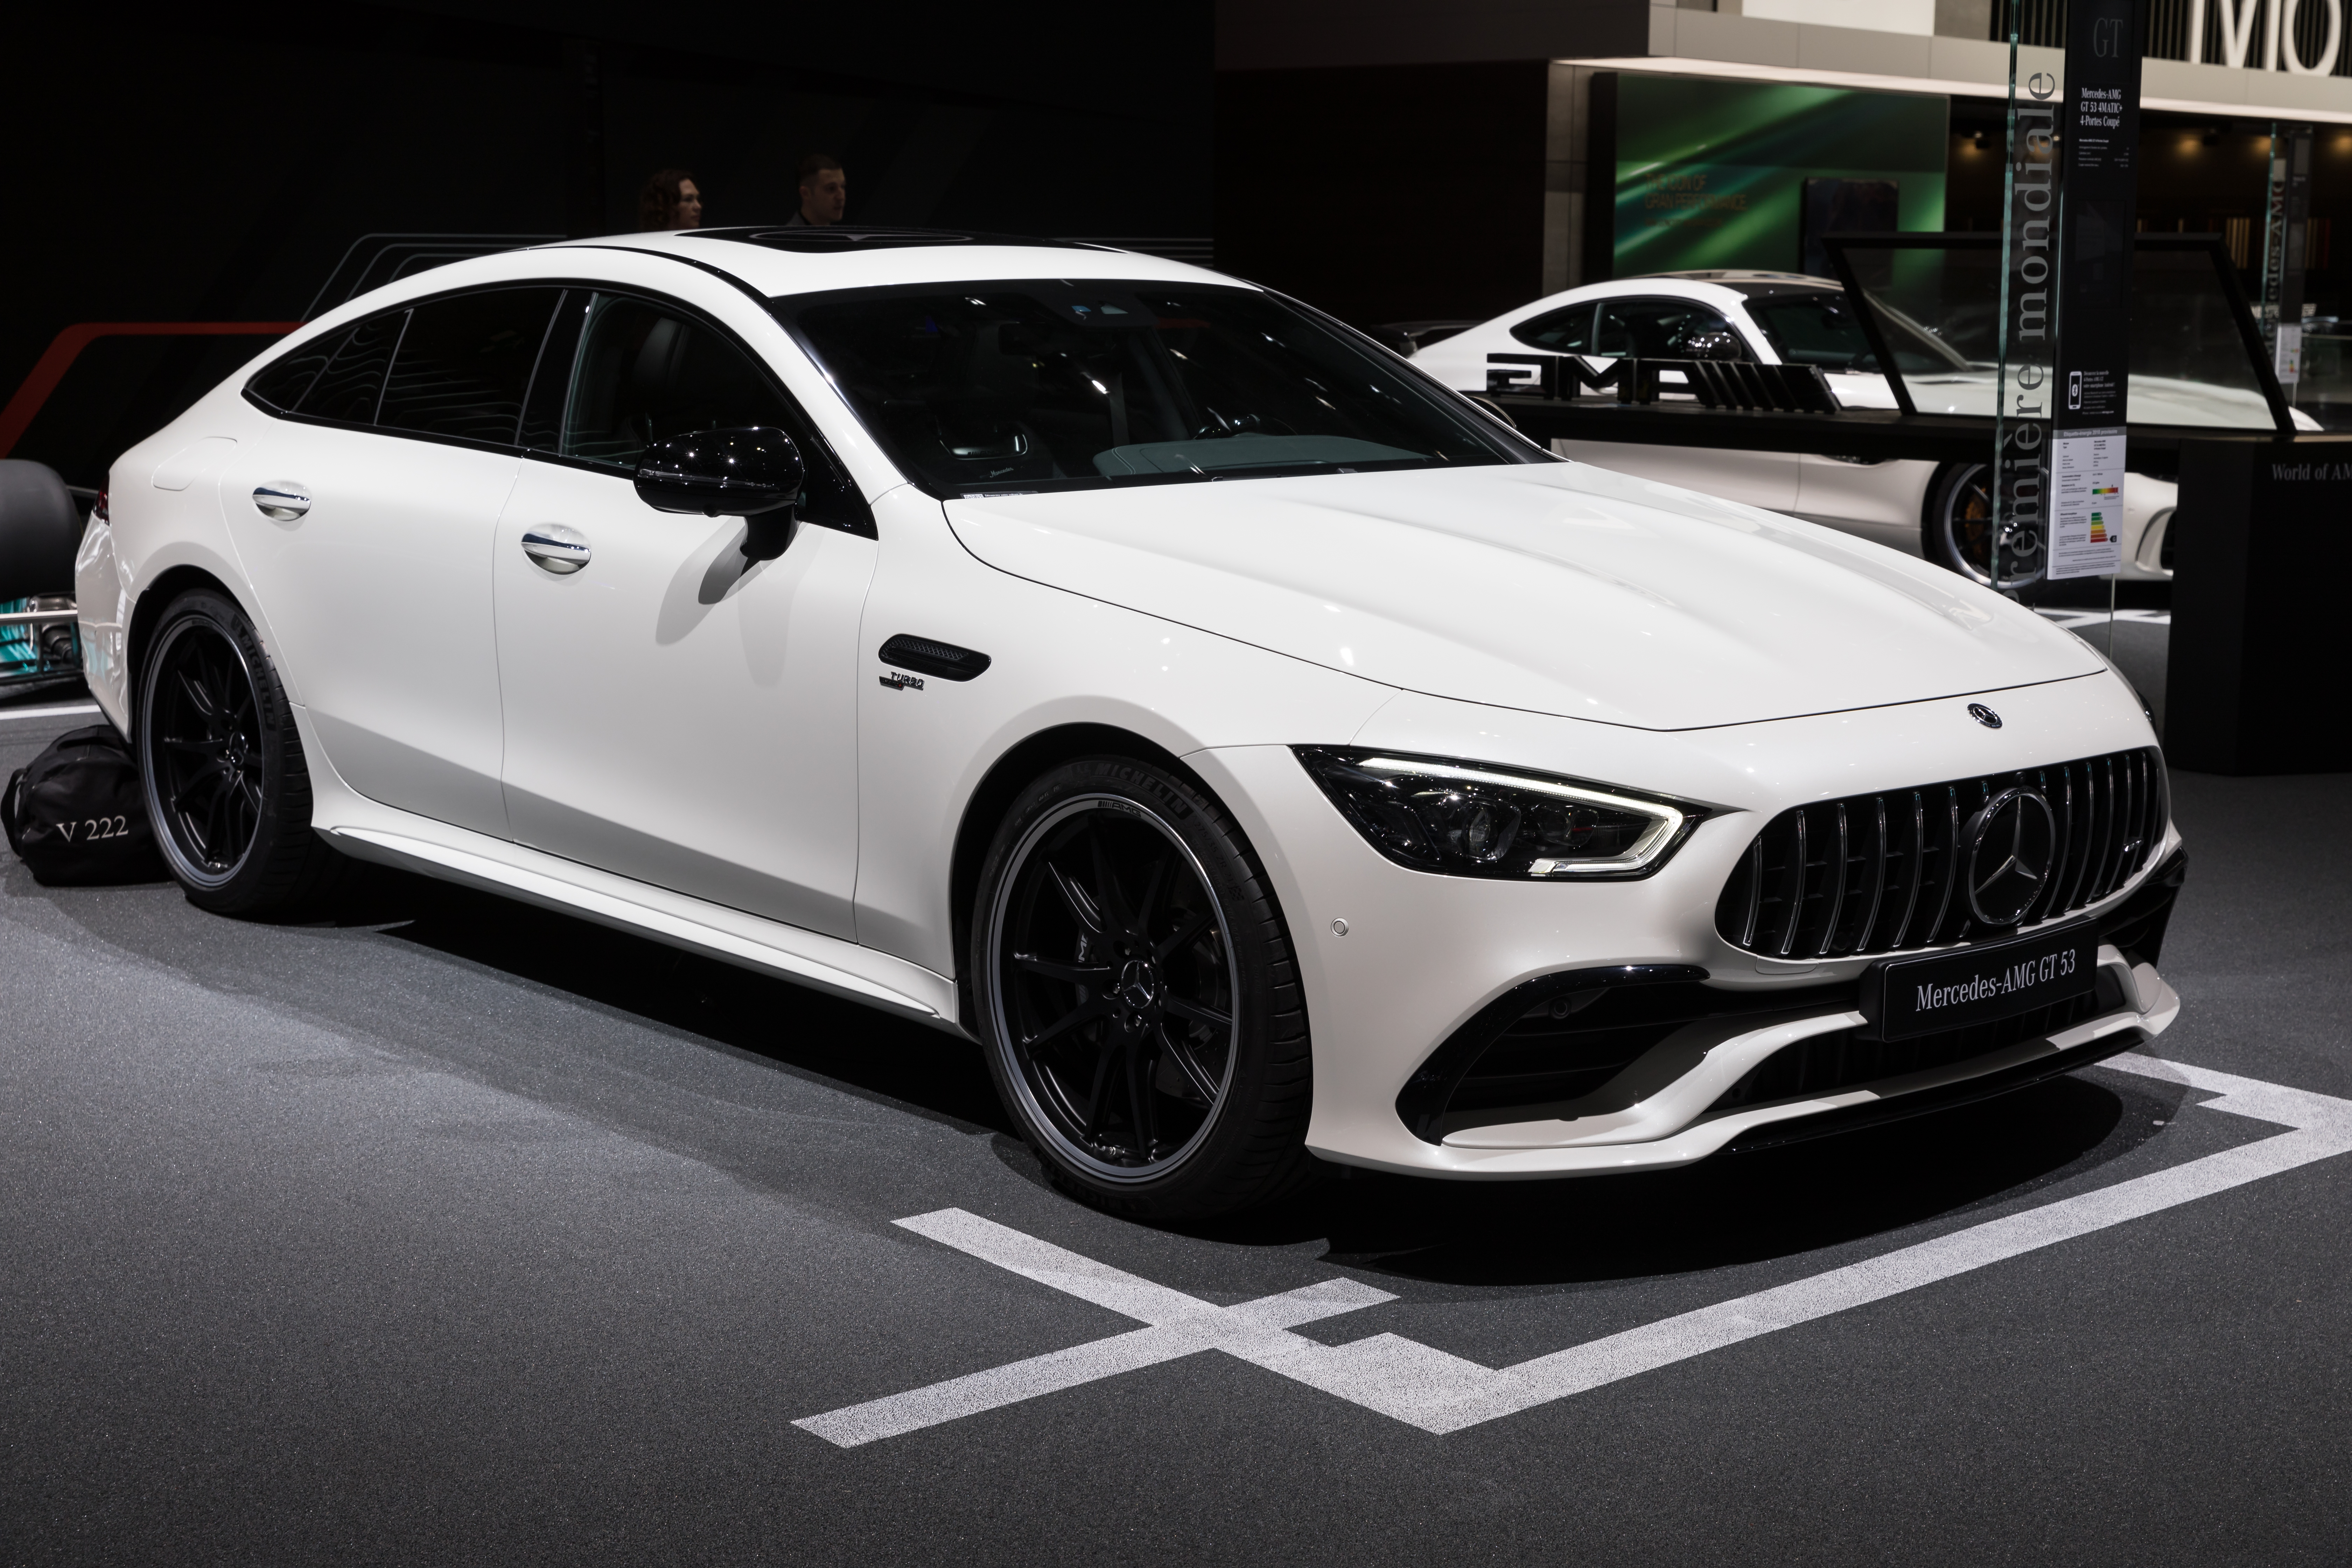 Mercedes Amg Mercedes Amg Gt 4 Door Coupé Wikipedia